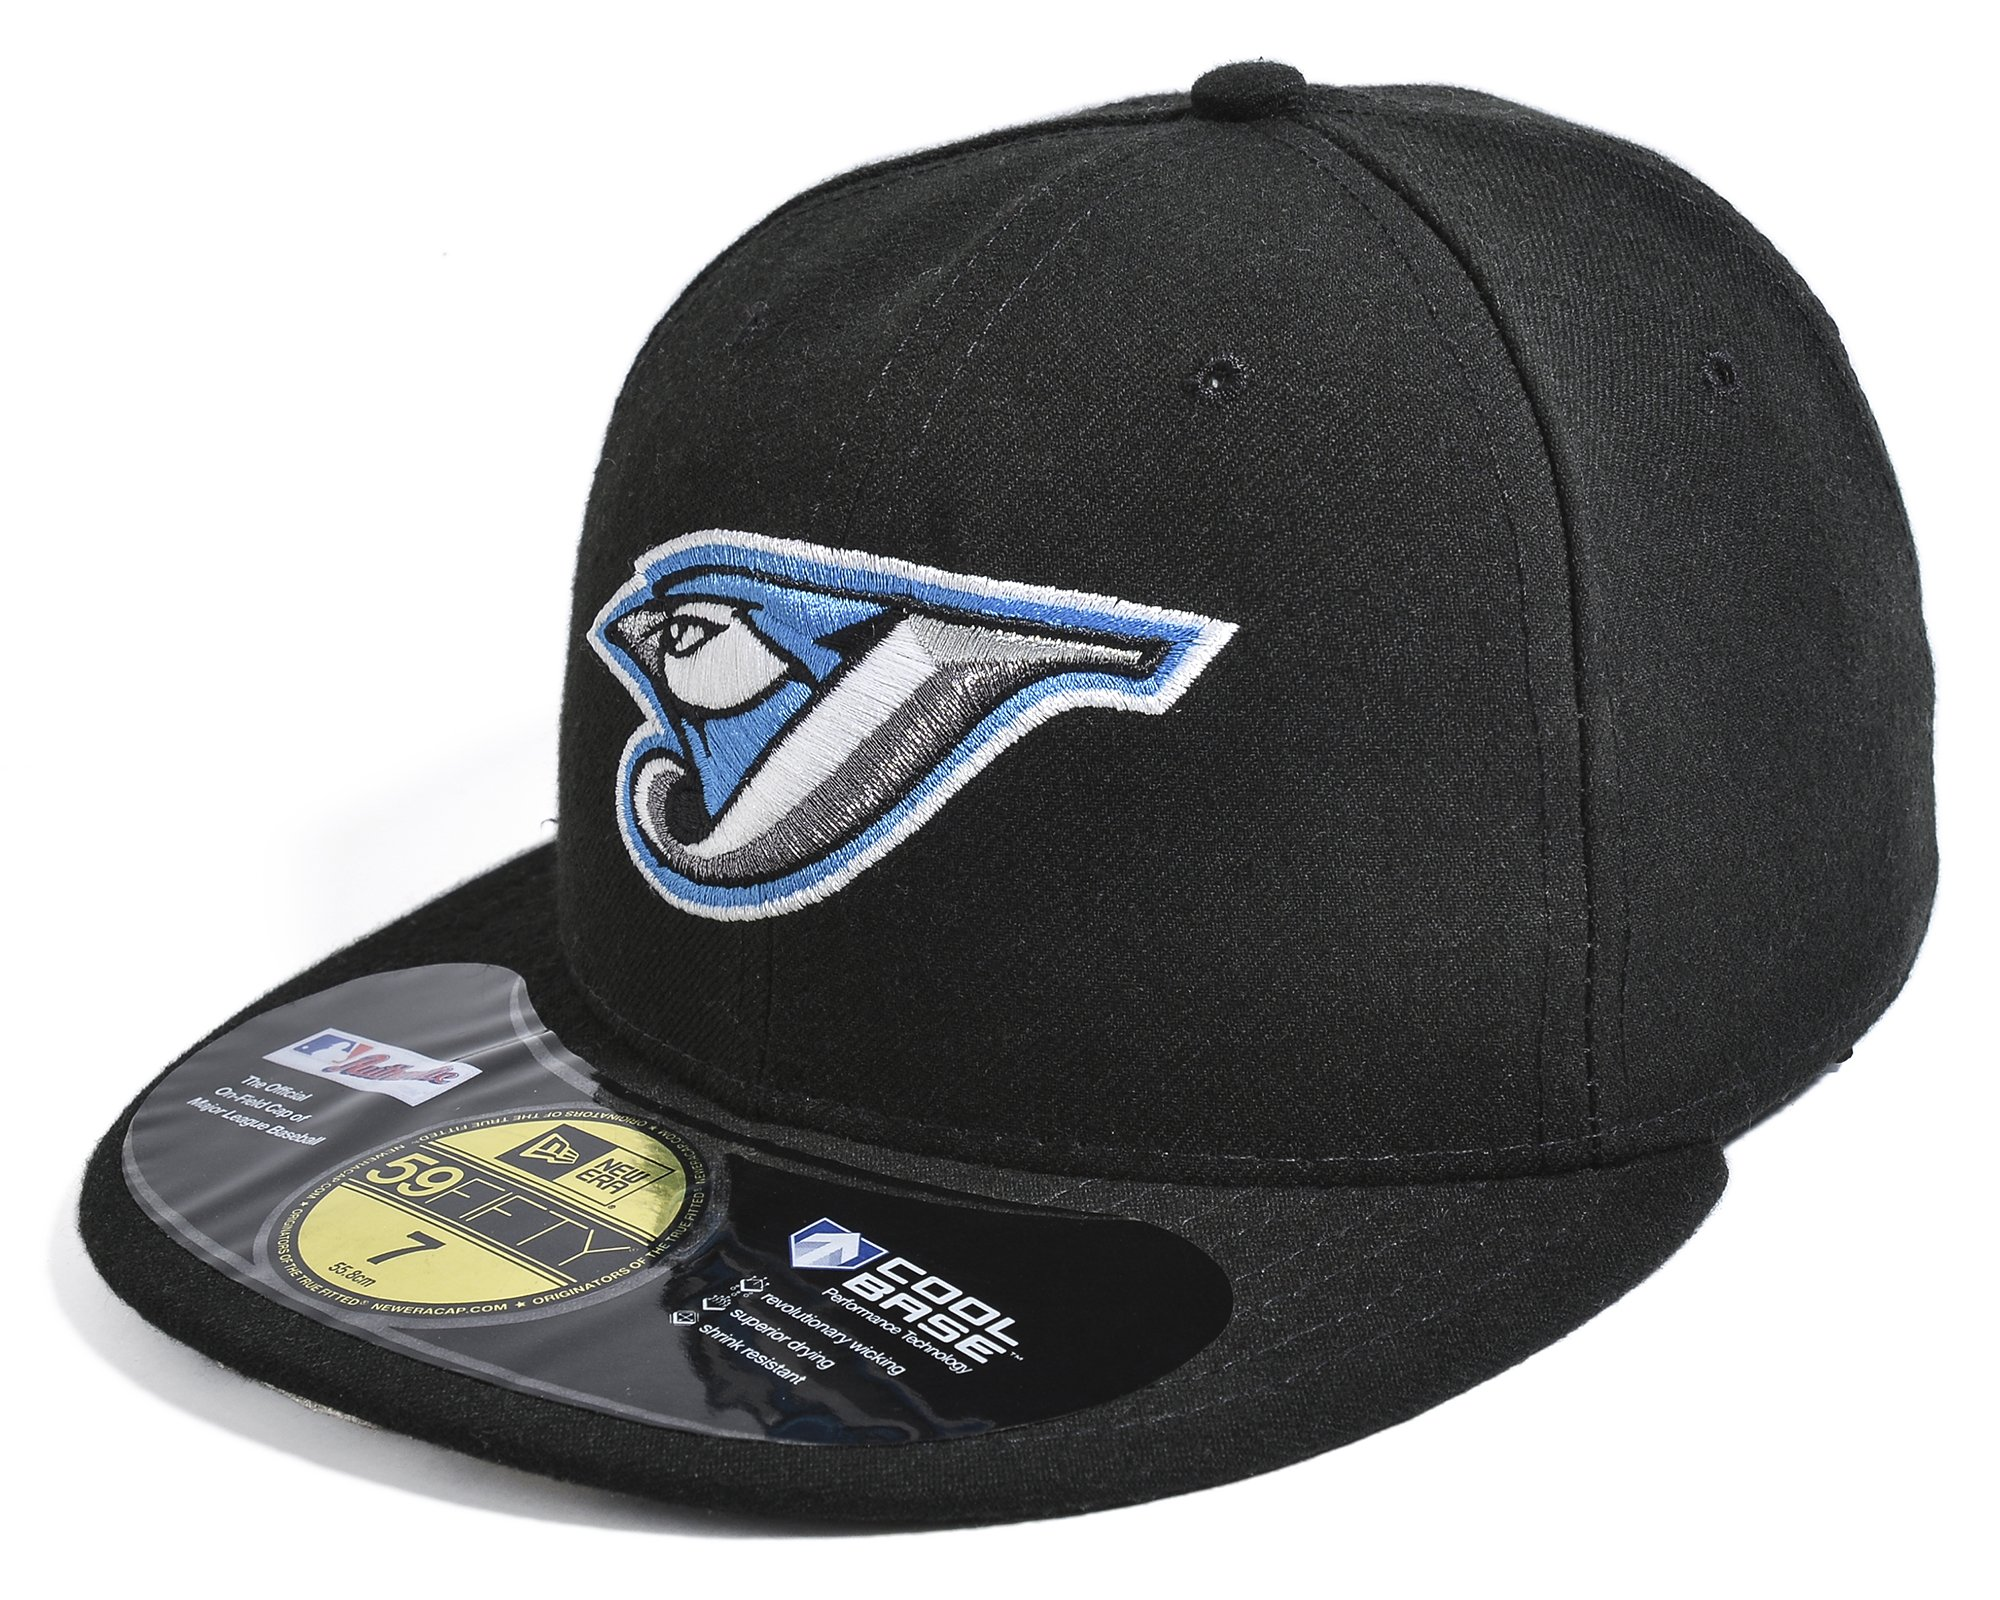 MLB Toronto Blue Jays Authentic On Field Game 59FIFTY Cap, Black, 7 7/8